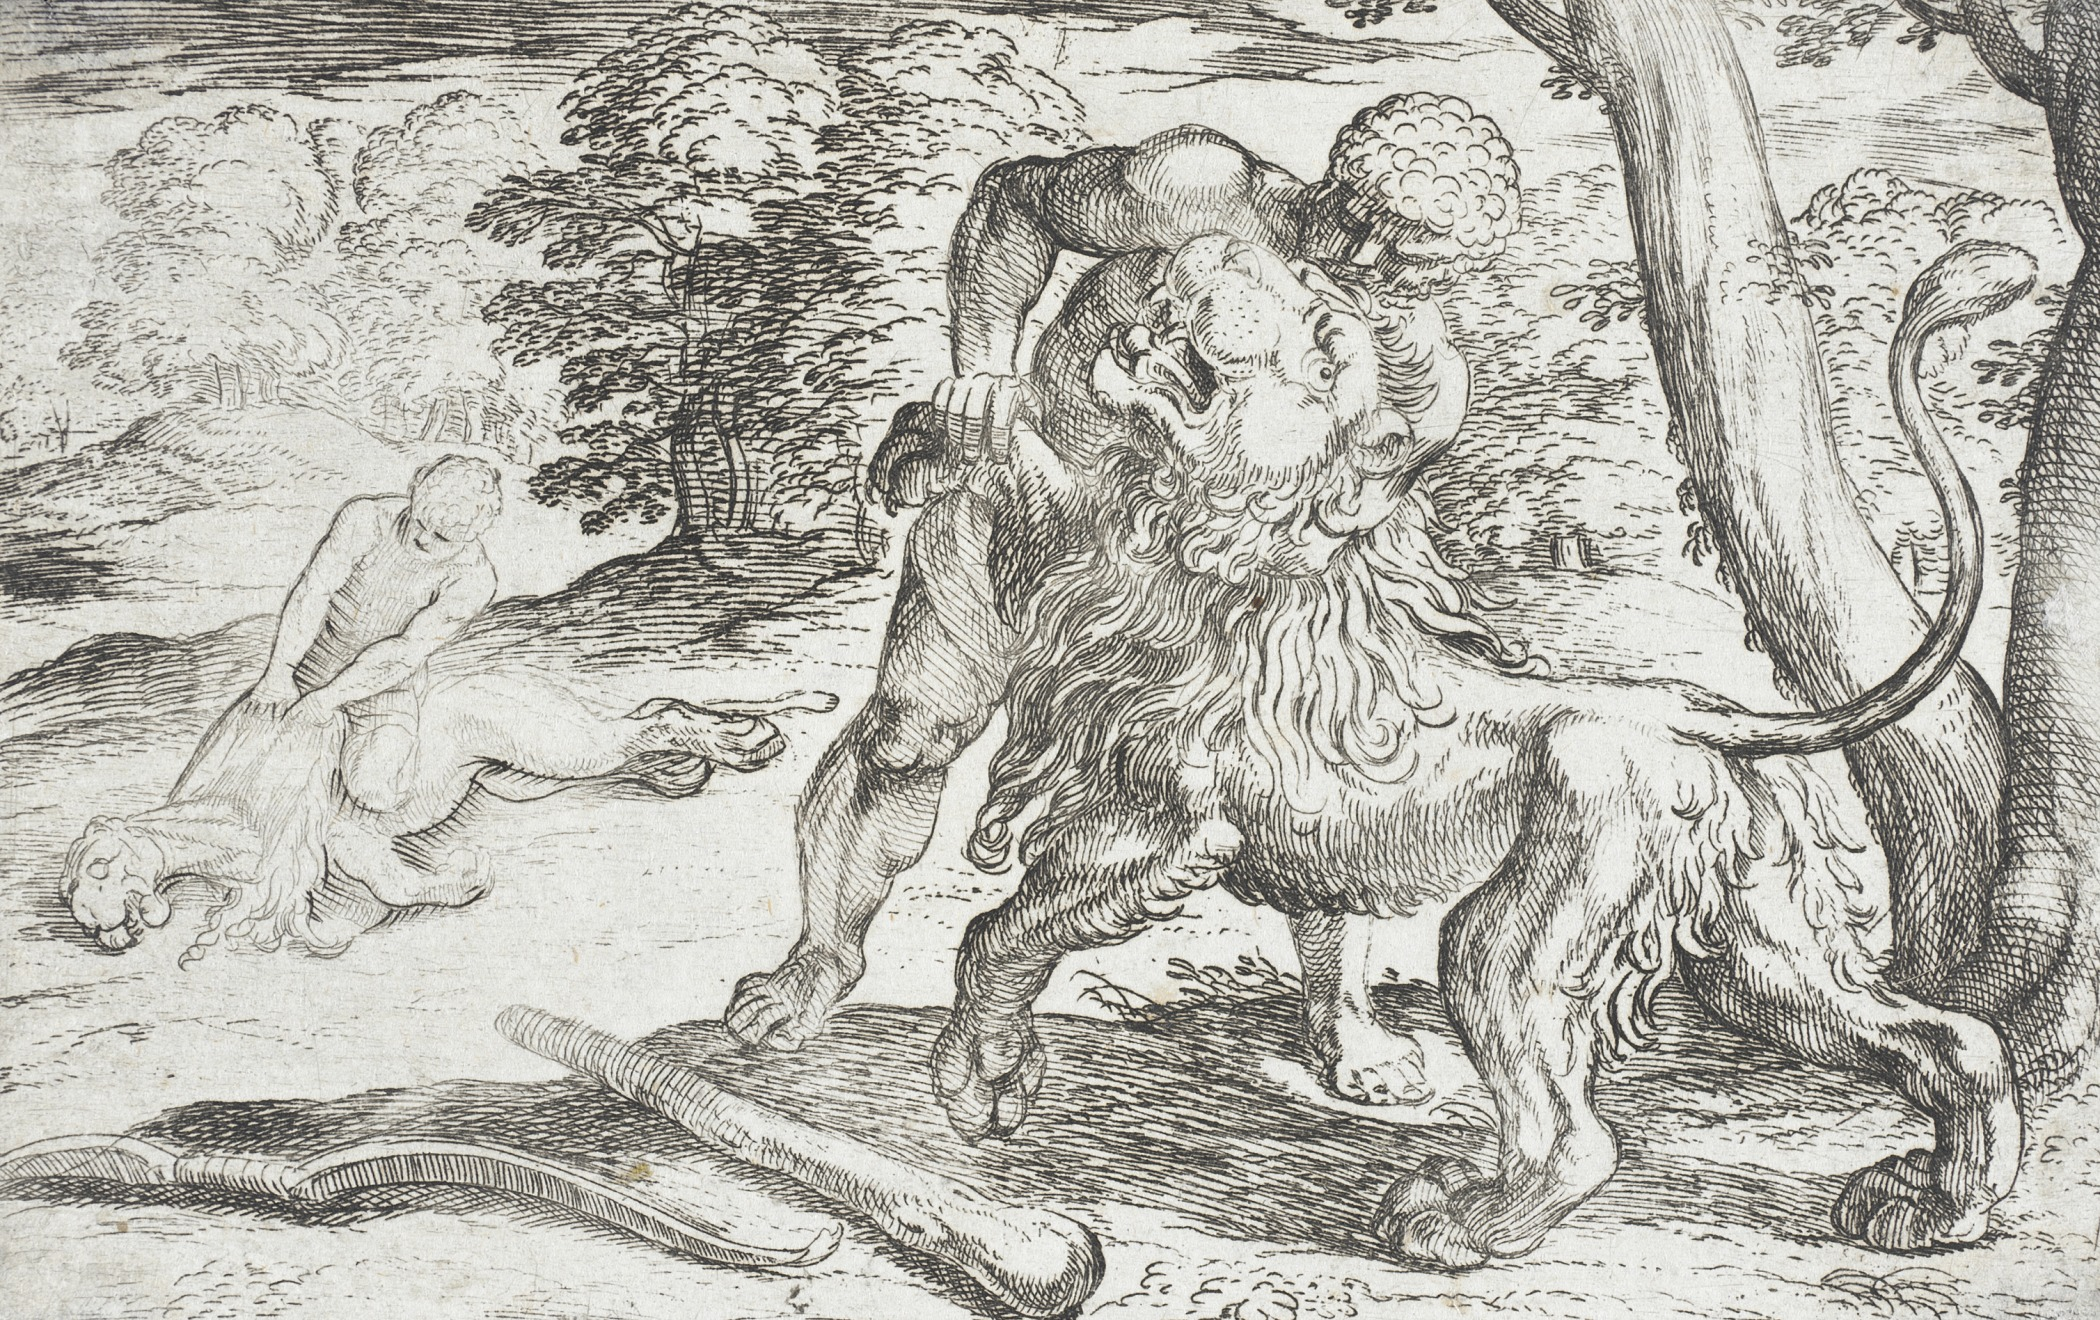 File:Hercules and the Nemean Lion LACMA 65.37.8.jpg ...